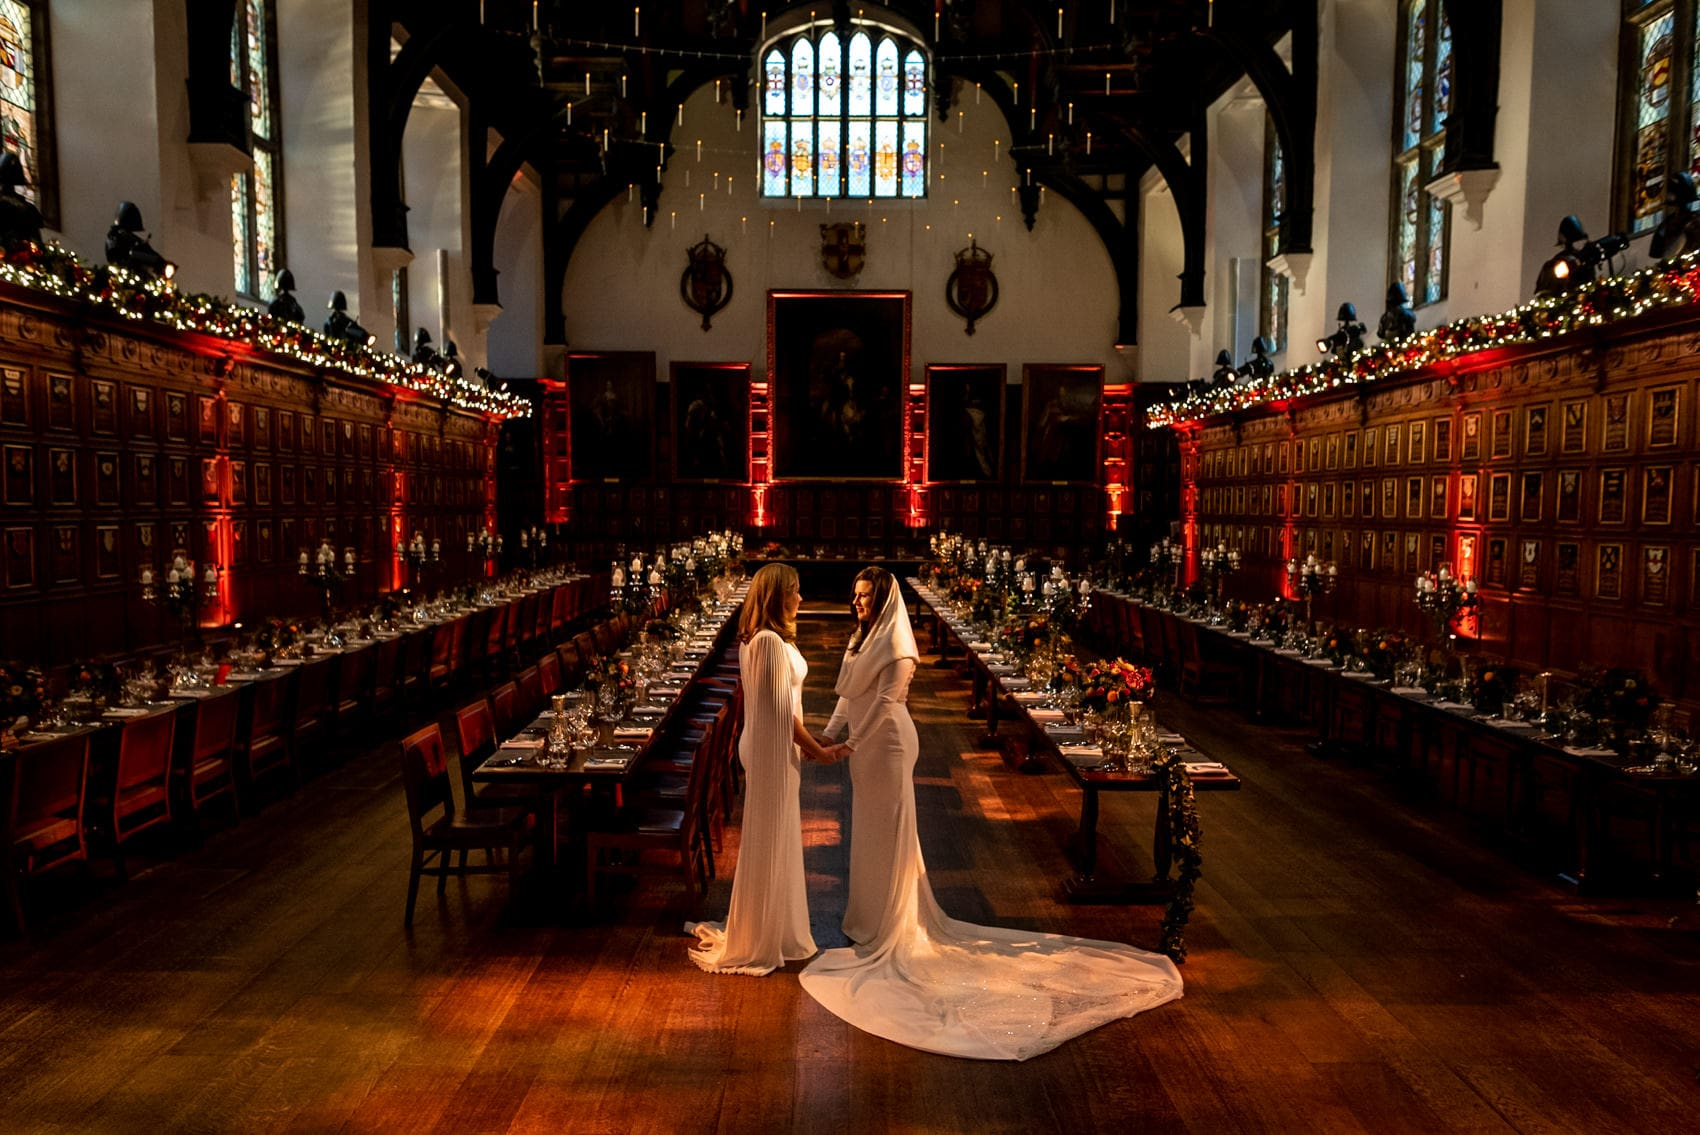 Two brides at their Middle Temple wedding in the great hall at Christmas